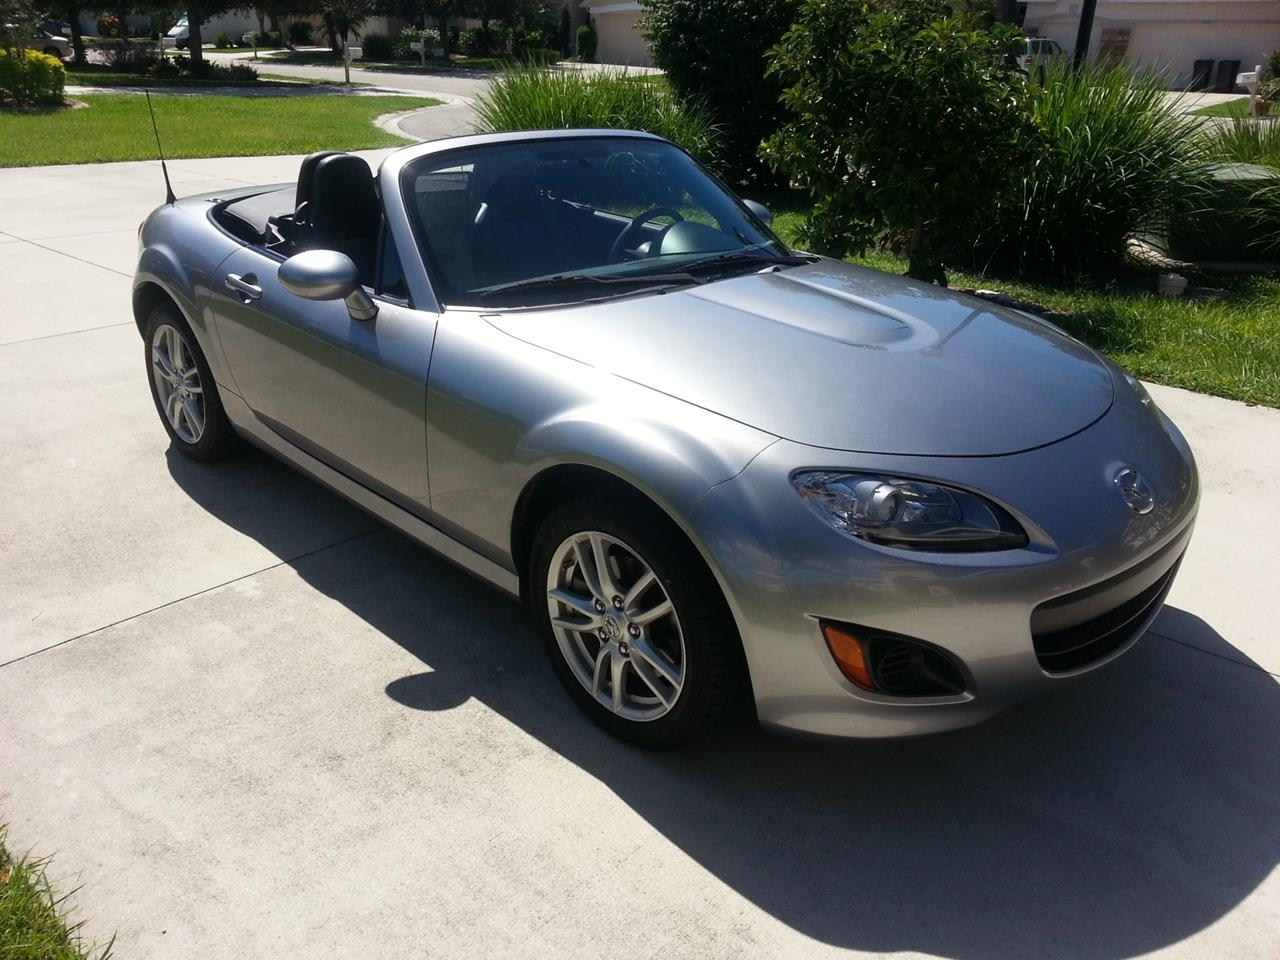 mazda mx 5 miata sport convertible cars prices wallpaper specs review. Black Bedroom Furniture Sets. Home Design Ideas